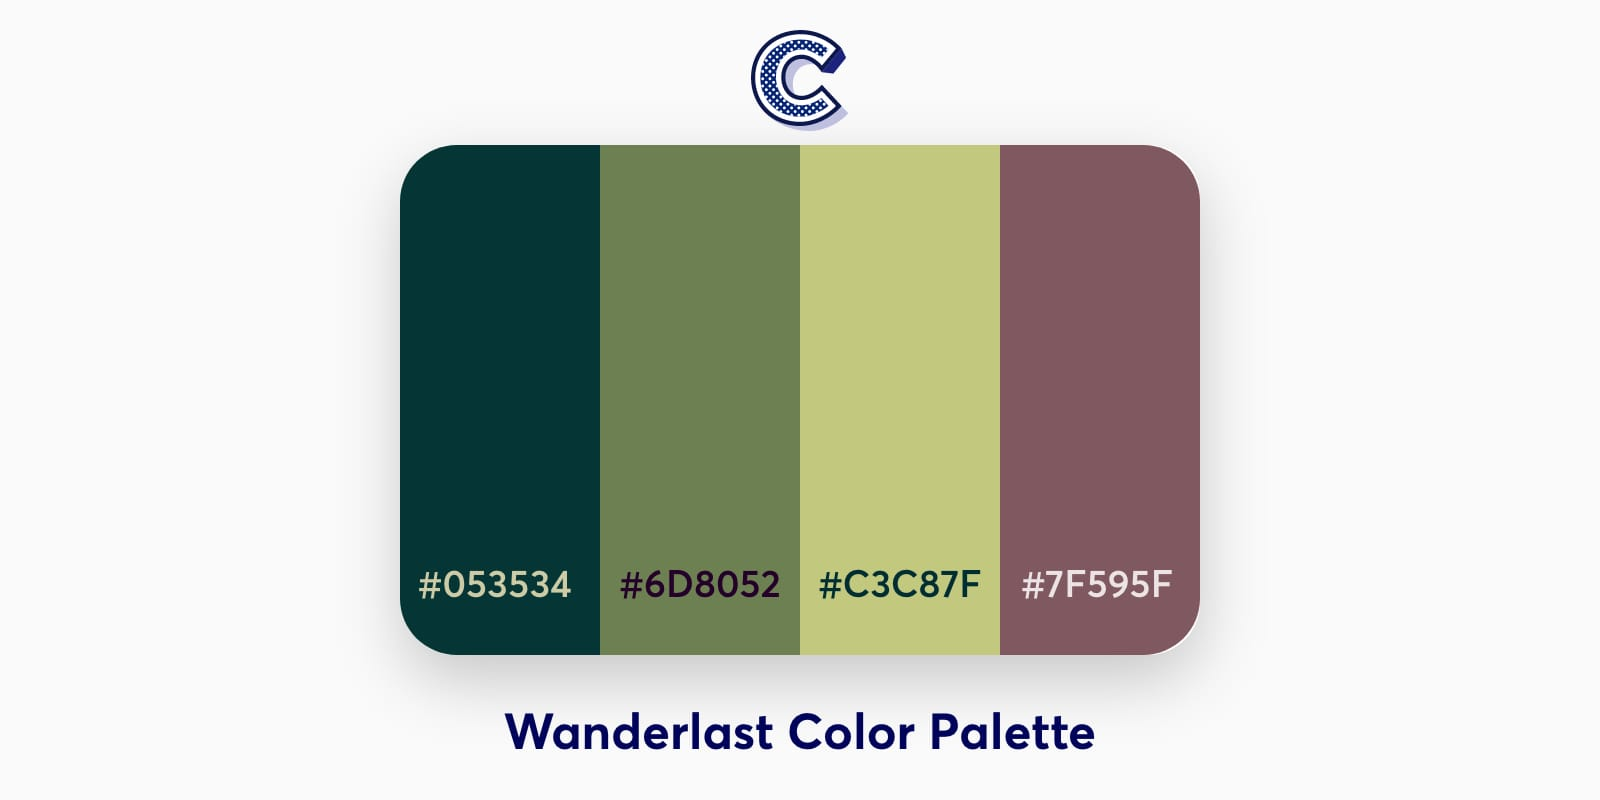 the featured image of wanderlast color palette